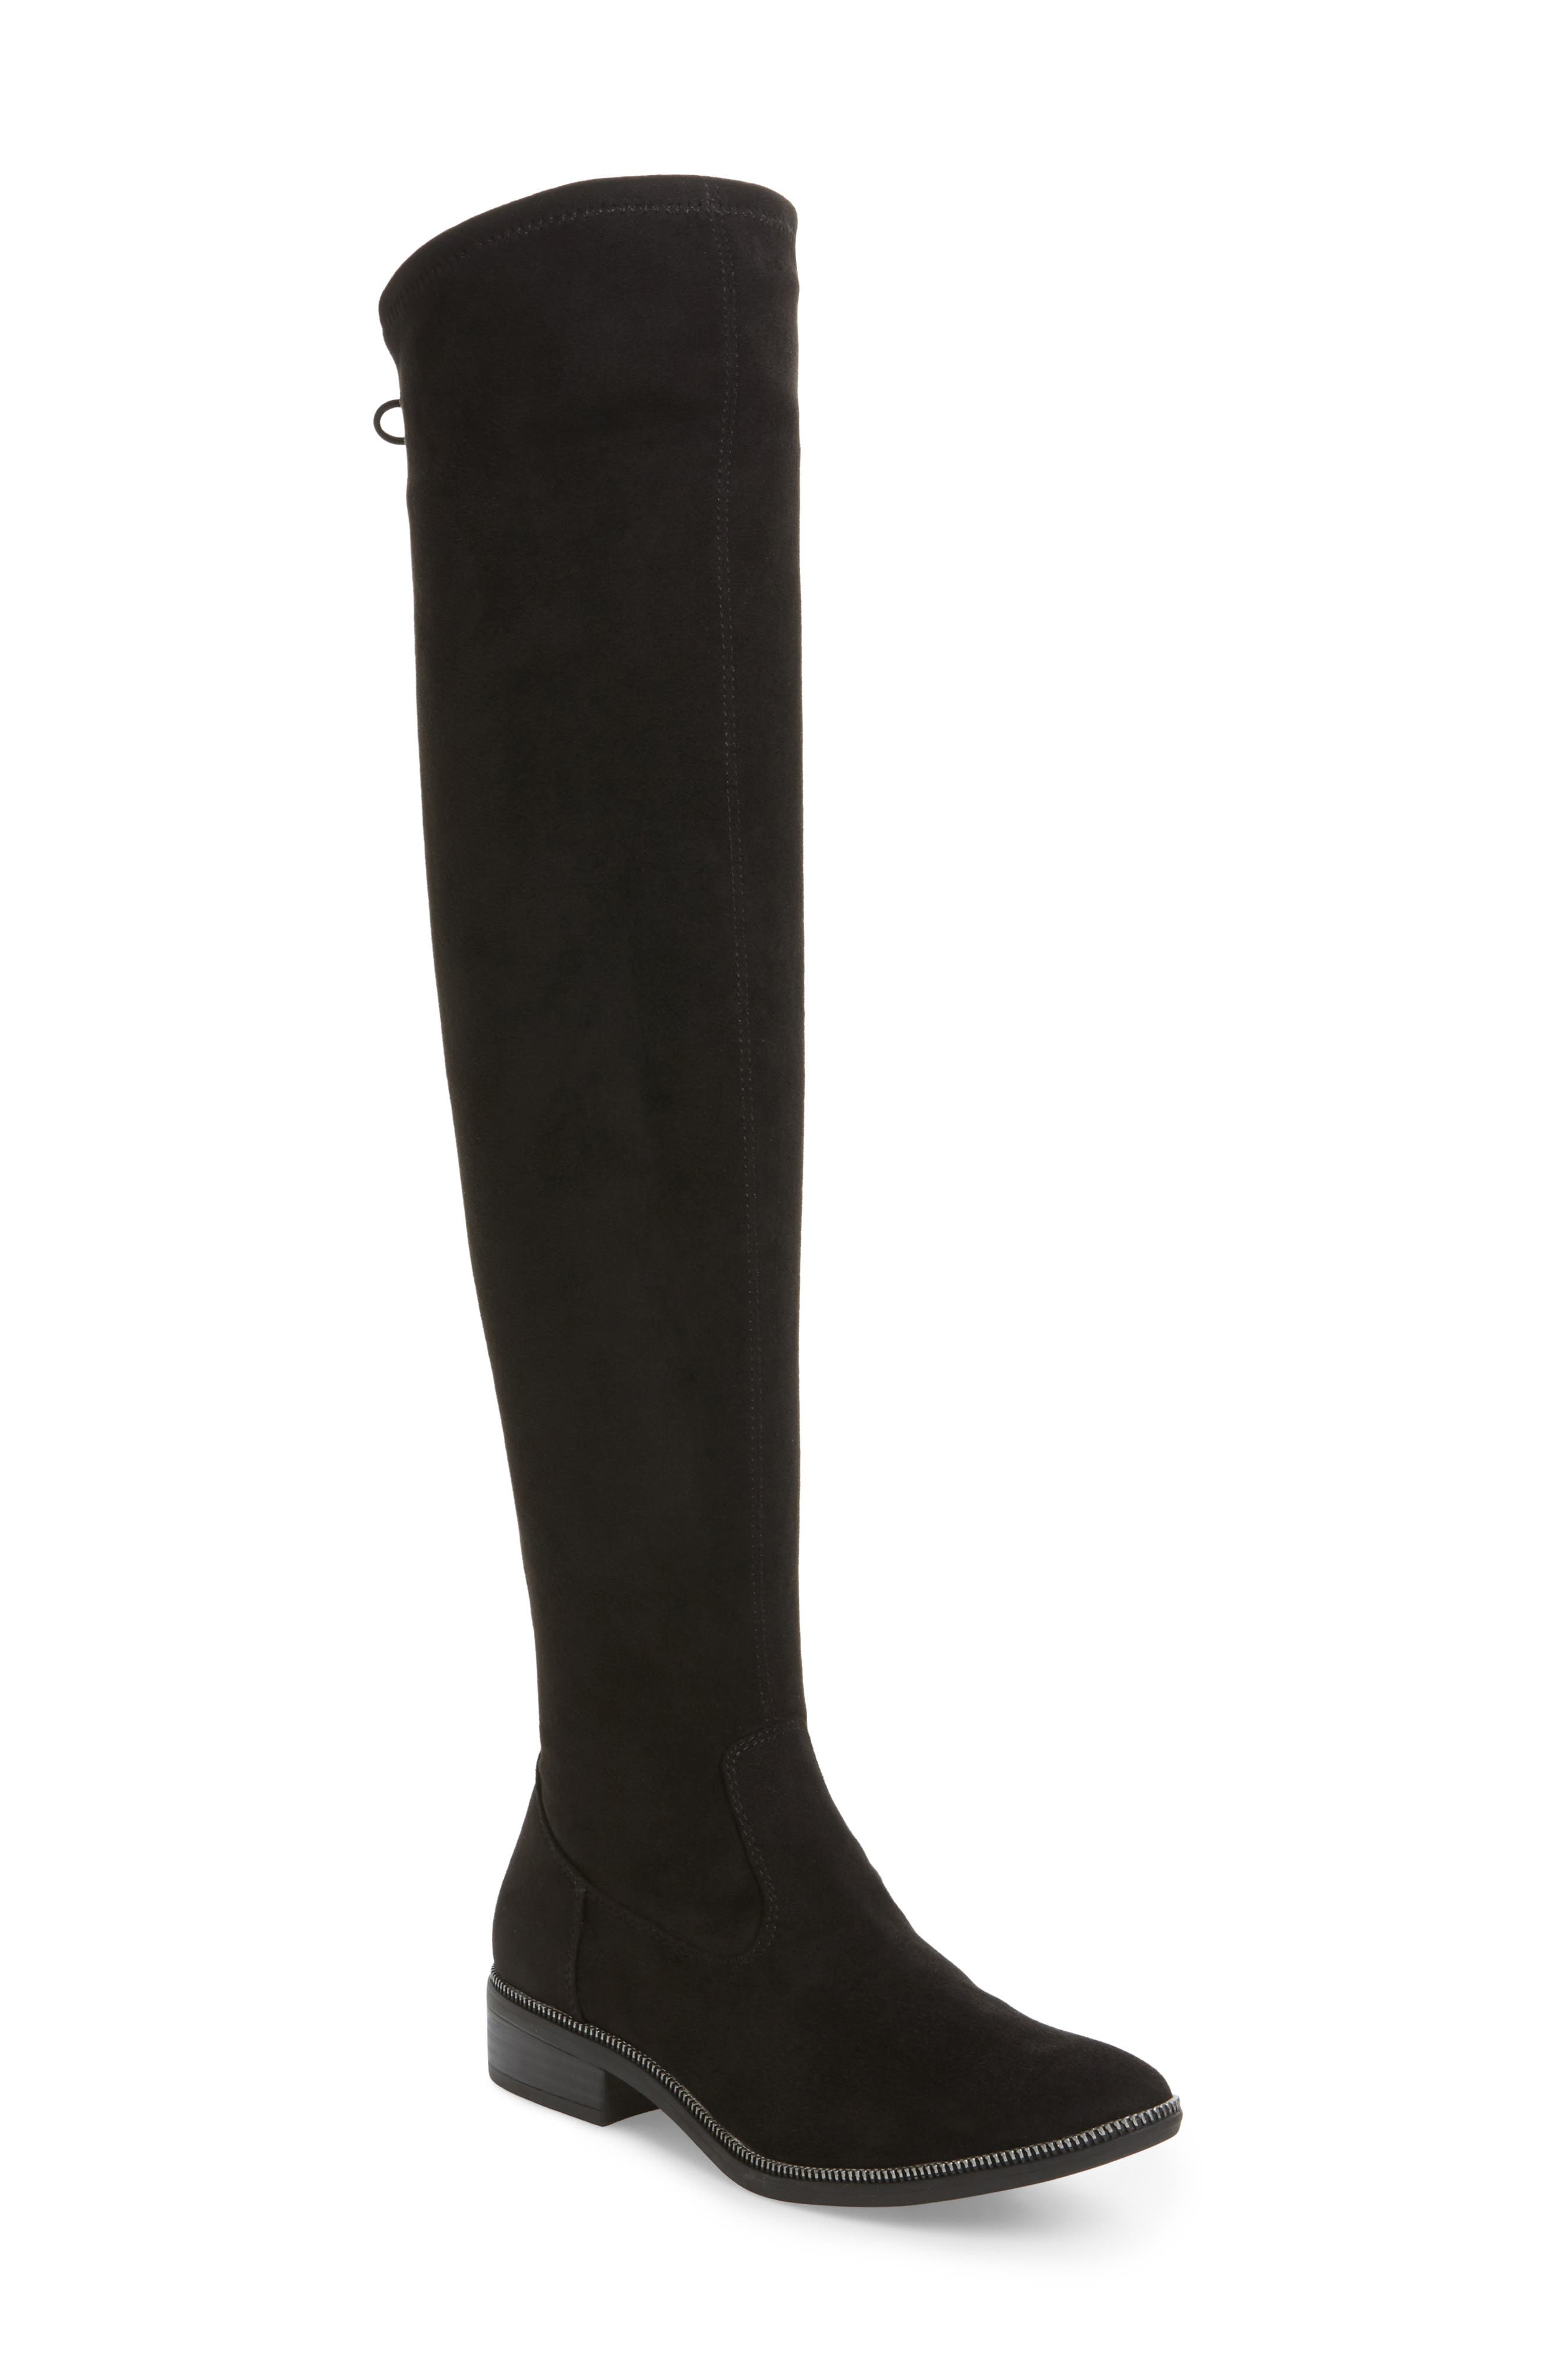 Phanie Over the Knee Stretch Boot,                         Main,                         color, 001